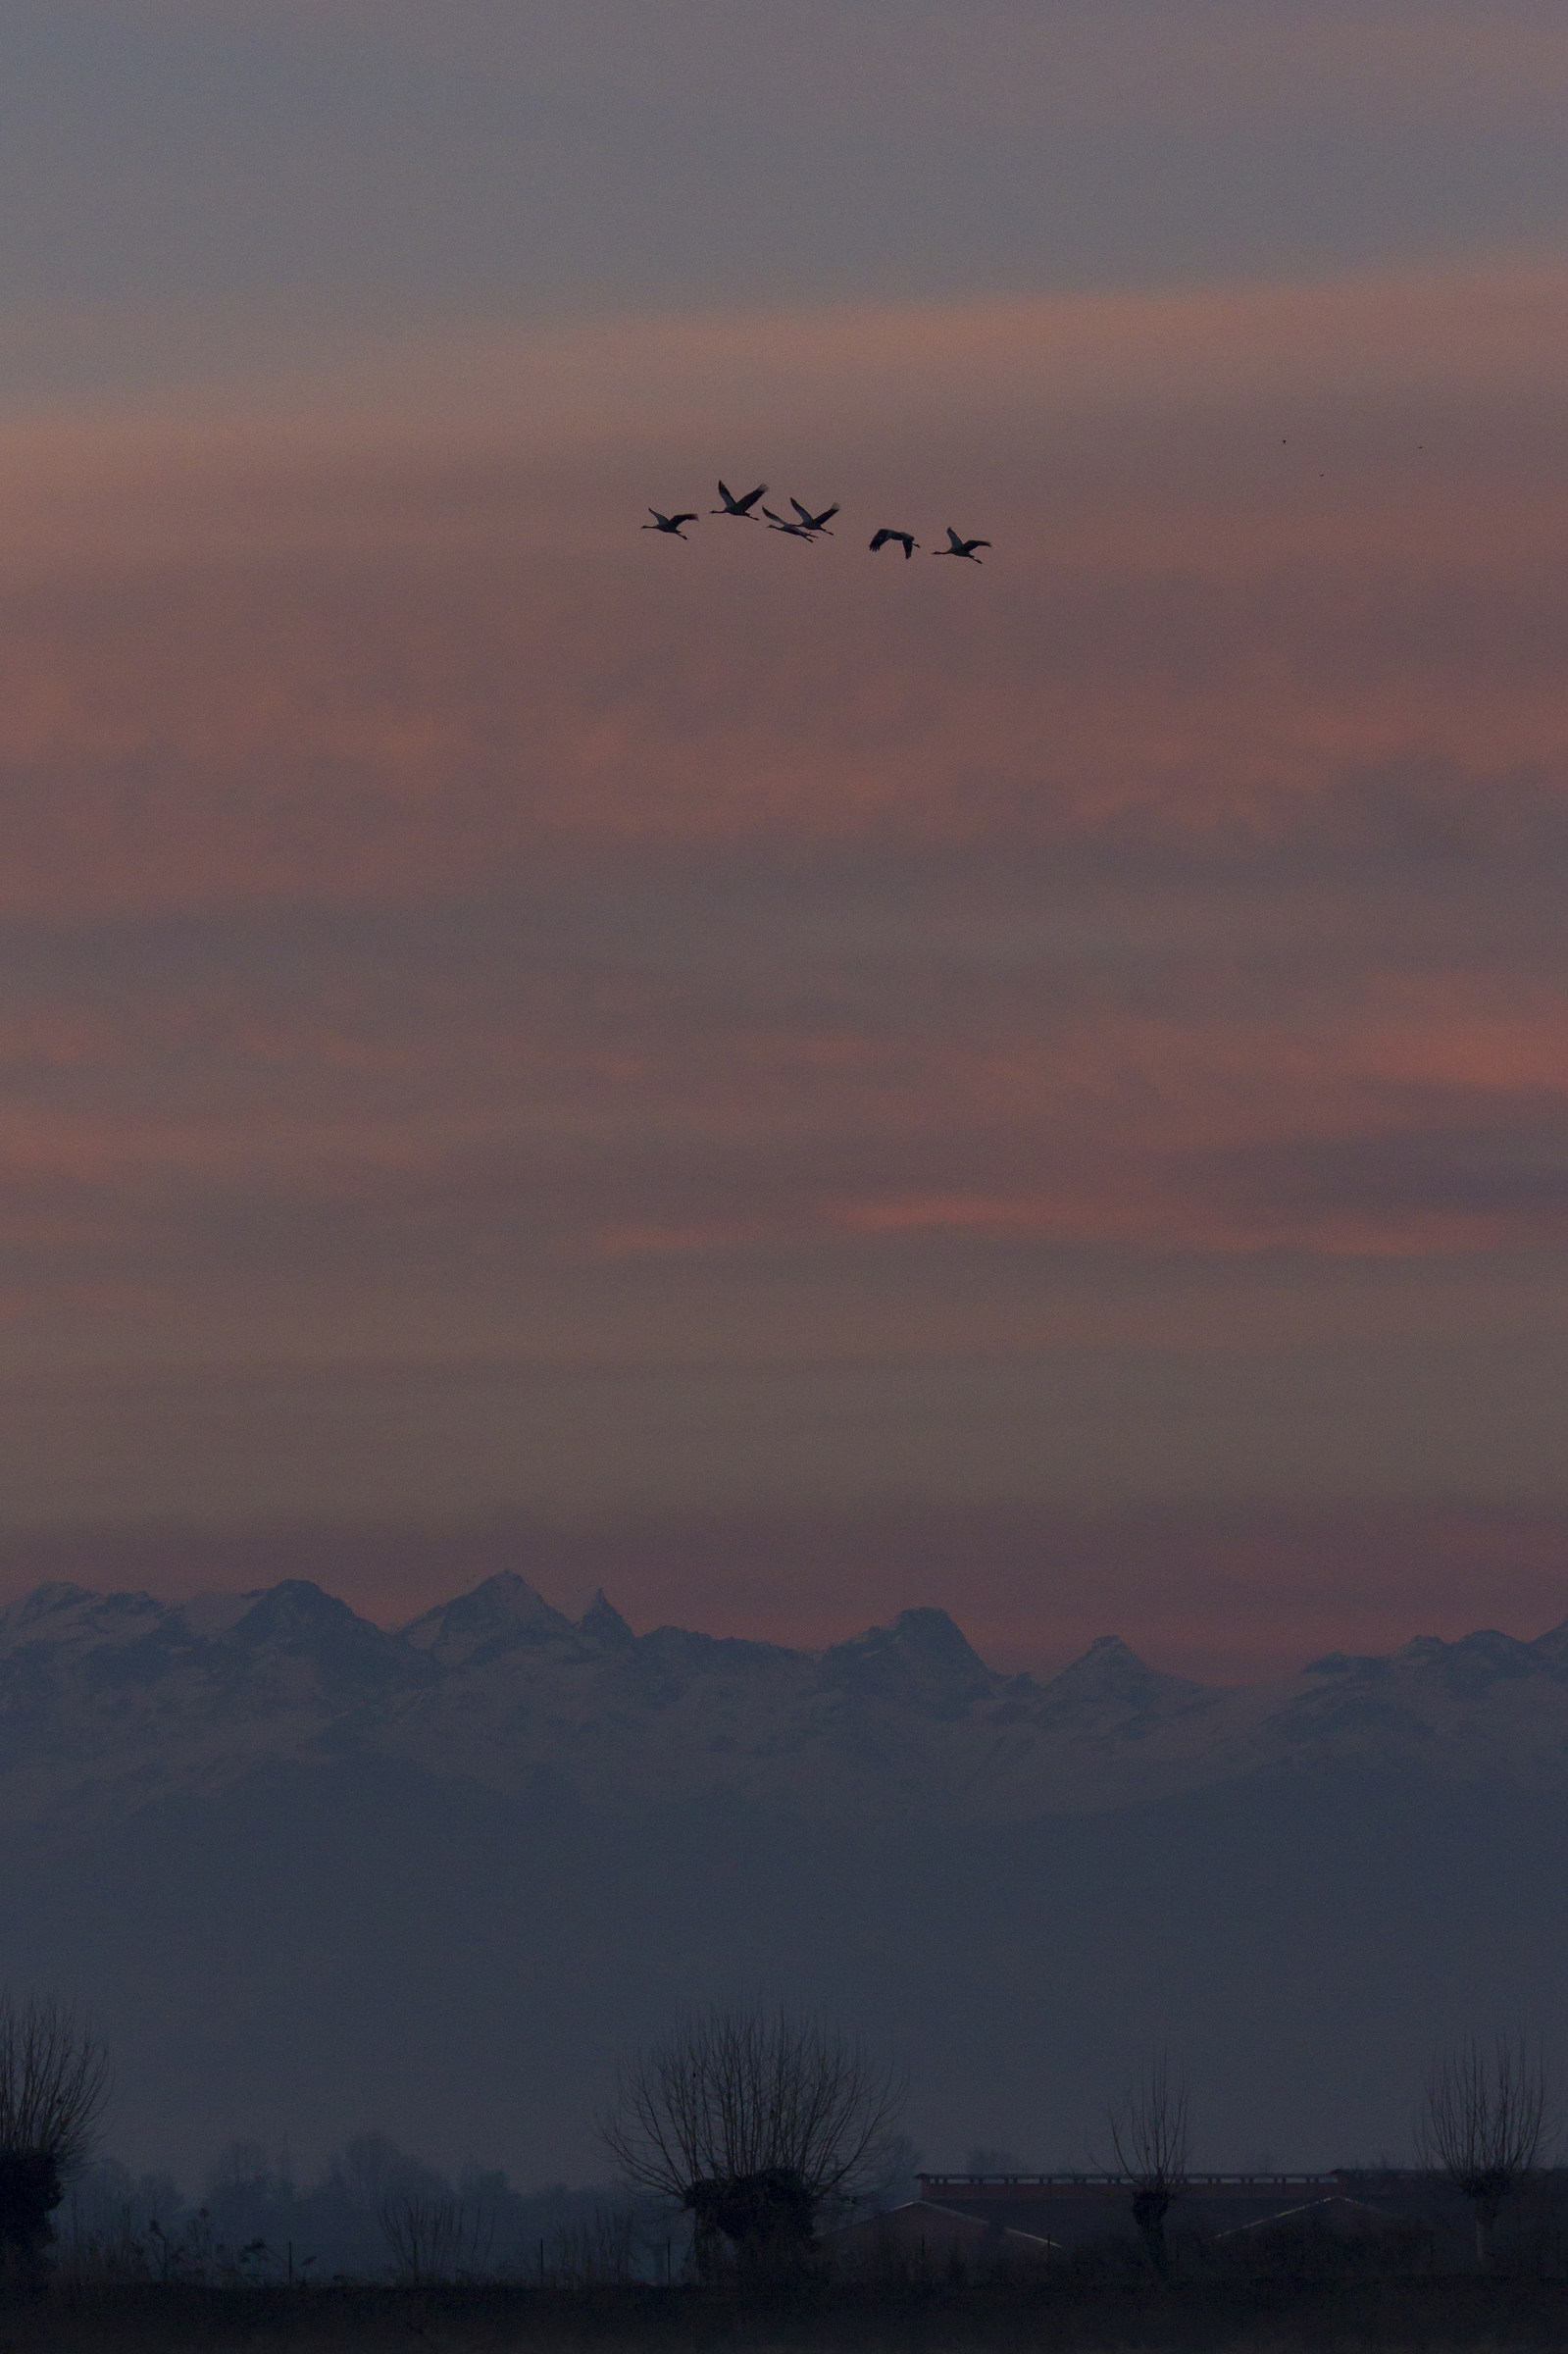 cranes flying at sunset...